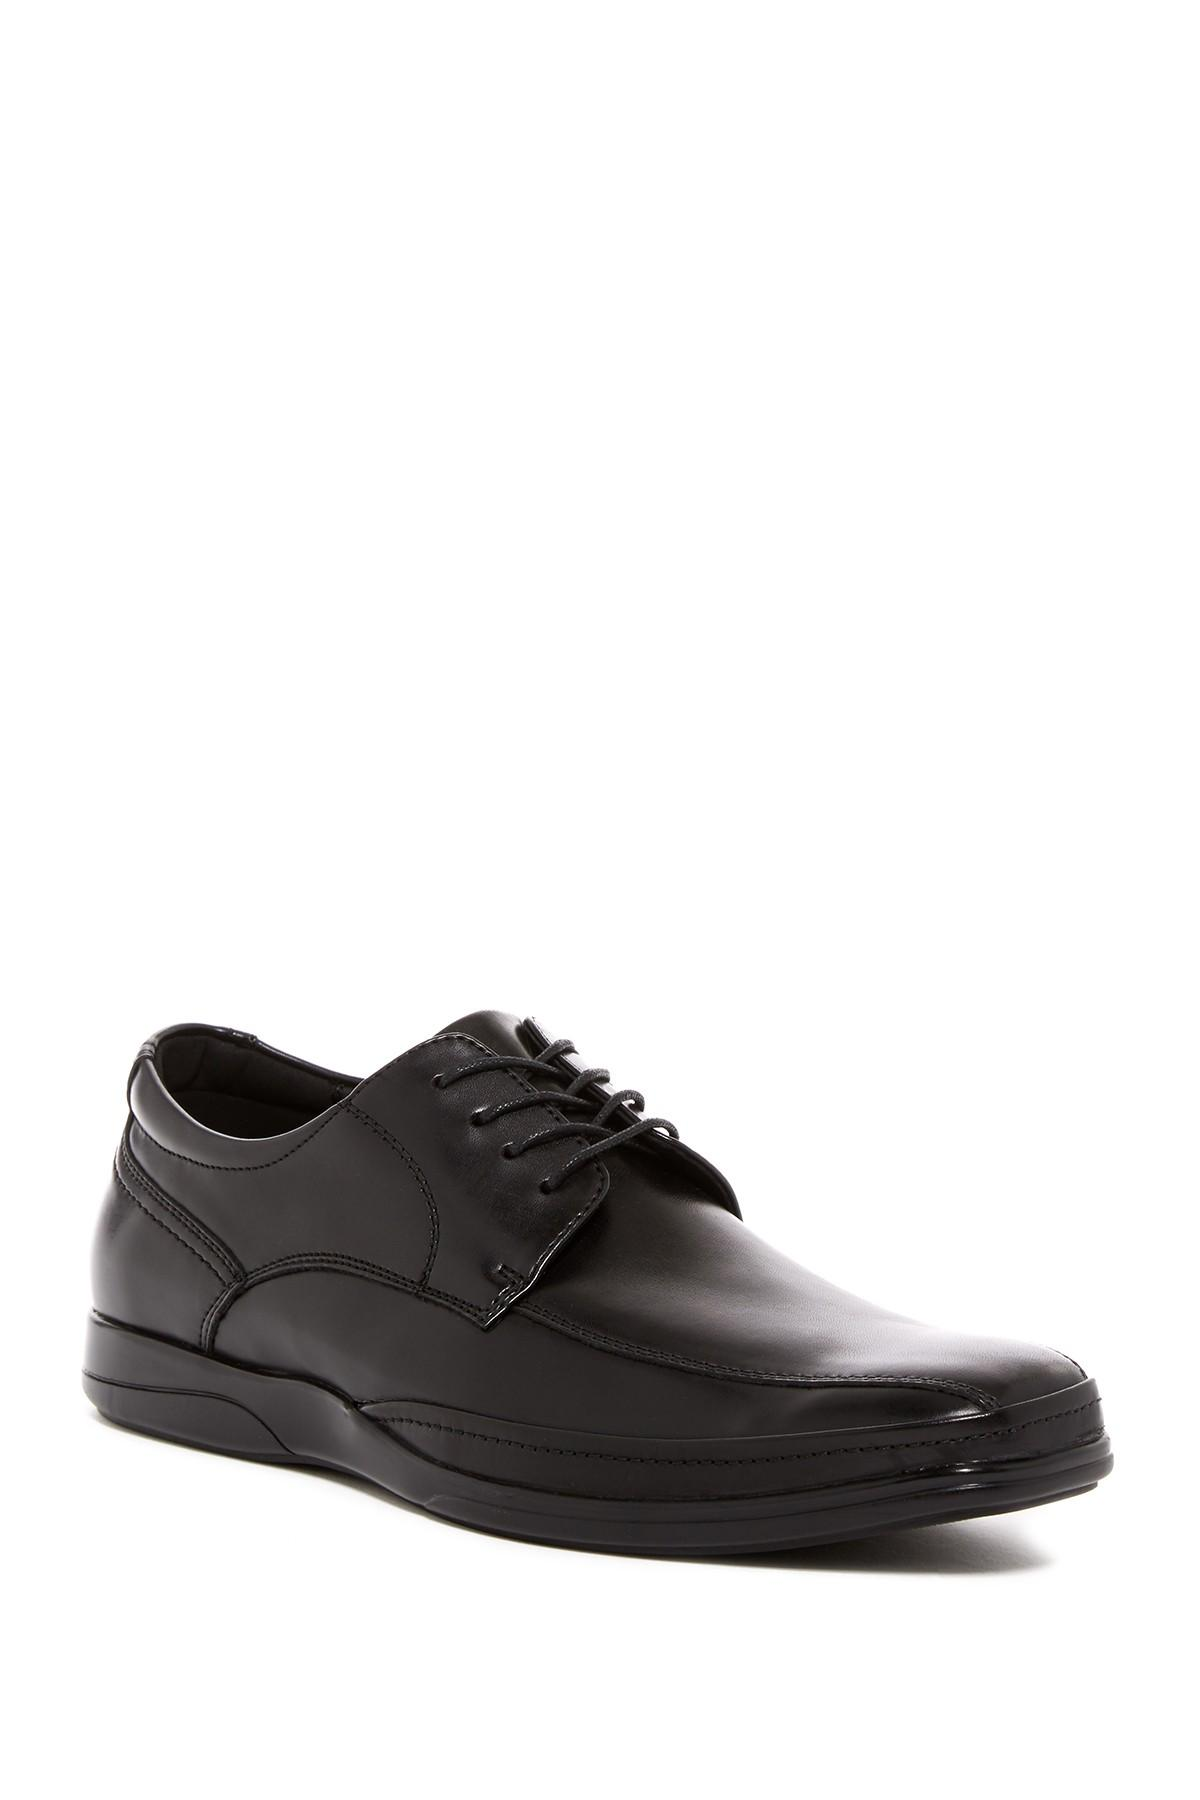 Kenneth Cole Shoes Nordstrom Rack Men